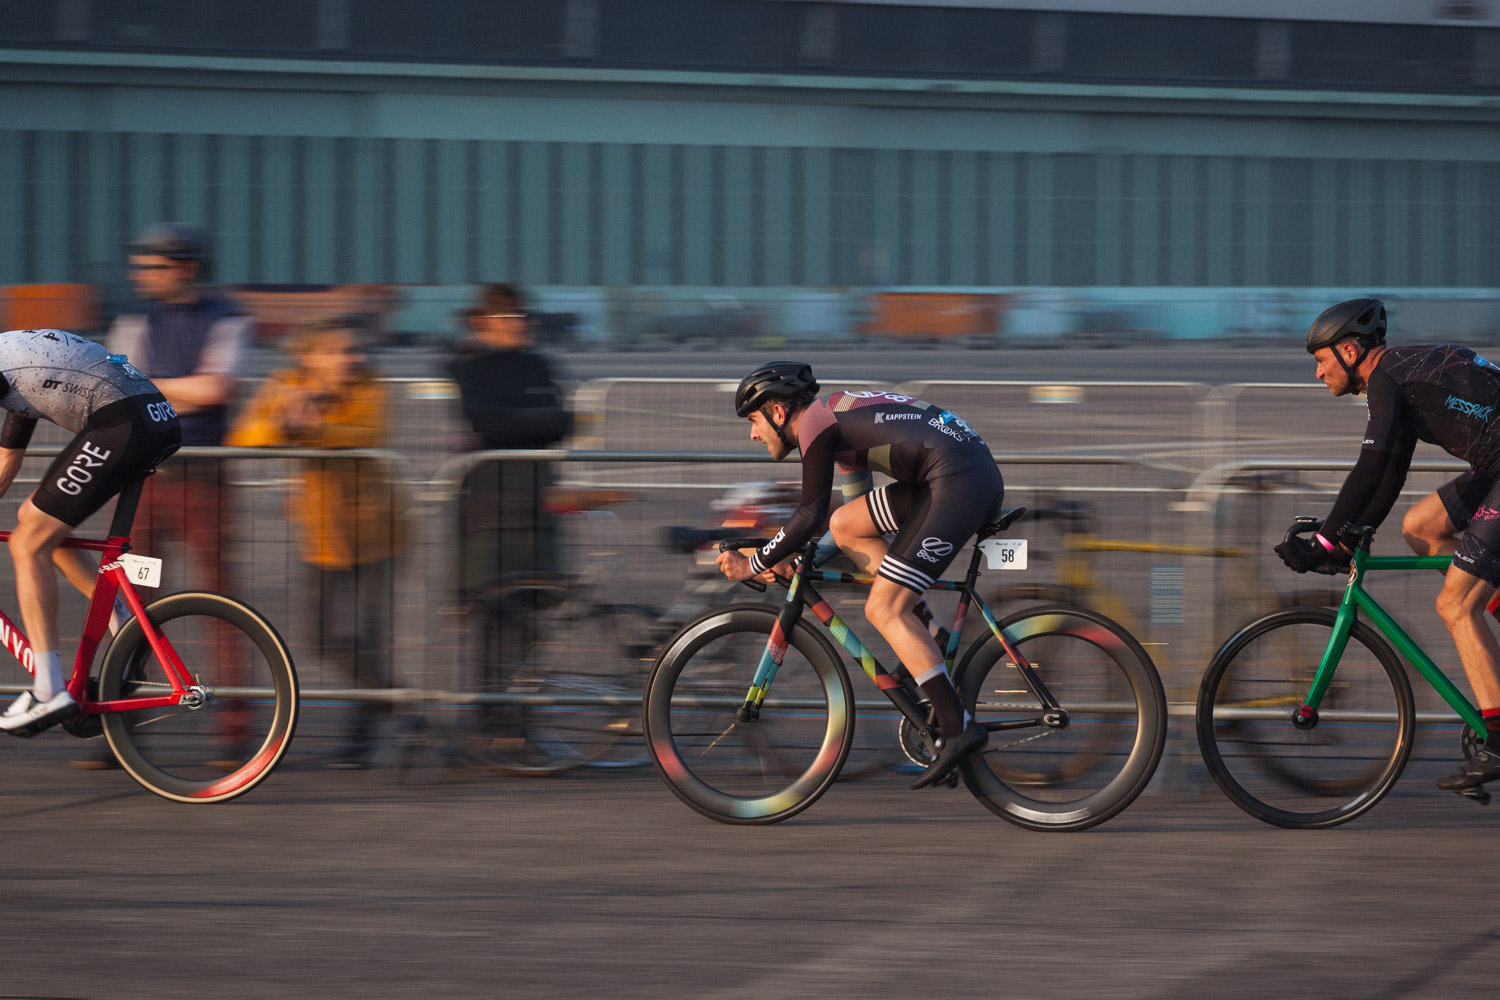 8brcrit 8bar team fixed gear crit 15 - Fast, Faster, 8bar crit 2018 - the race review!